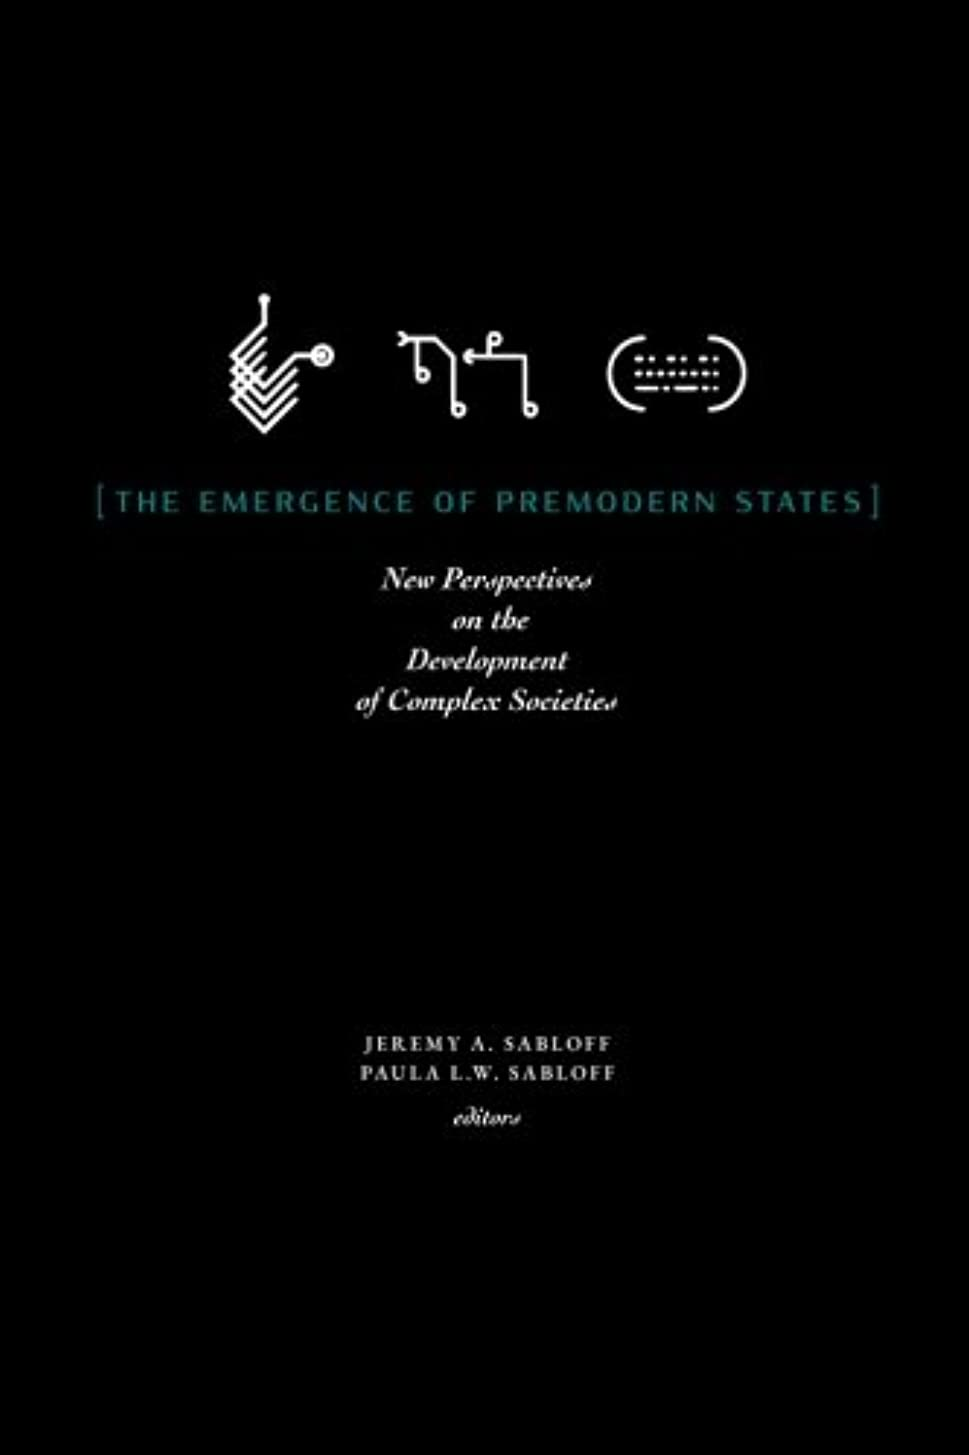 チームオーナー肥沃なThe Emergence of Premodern States: New Perspectives on the Development of Complex Societies